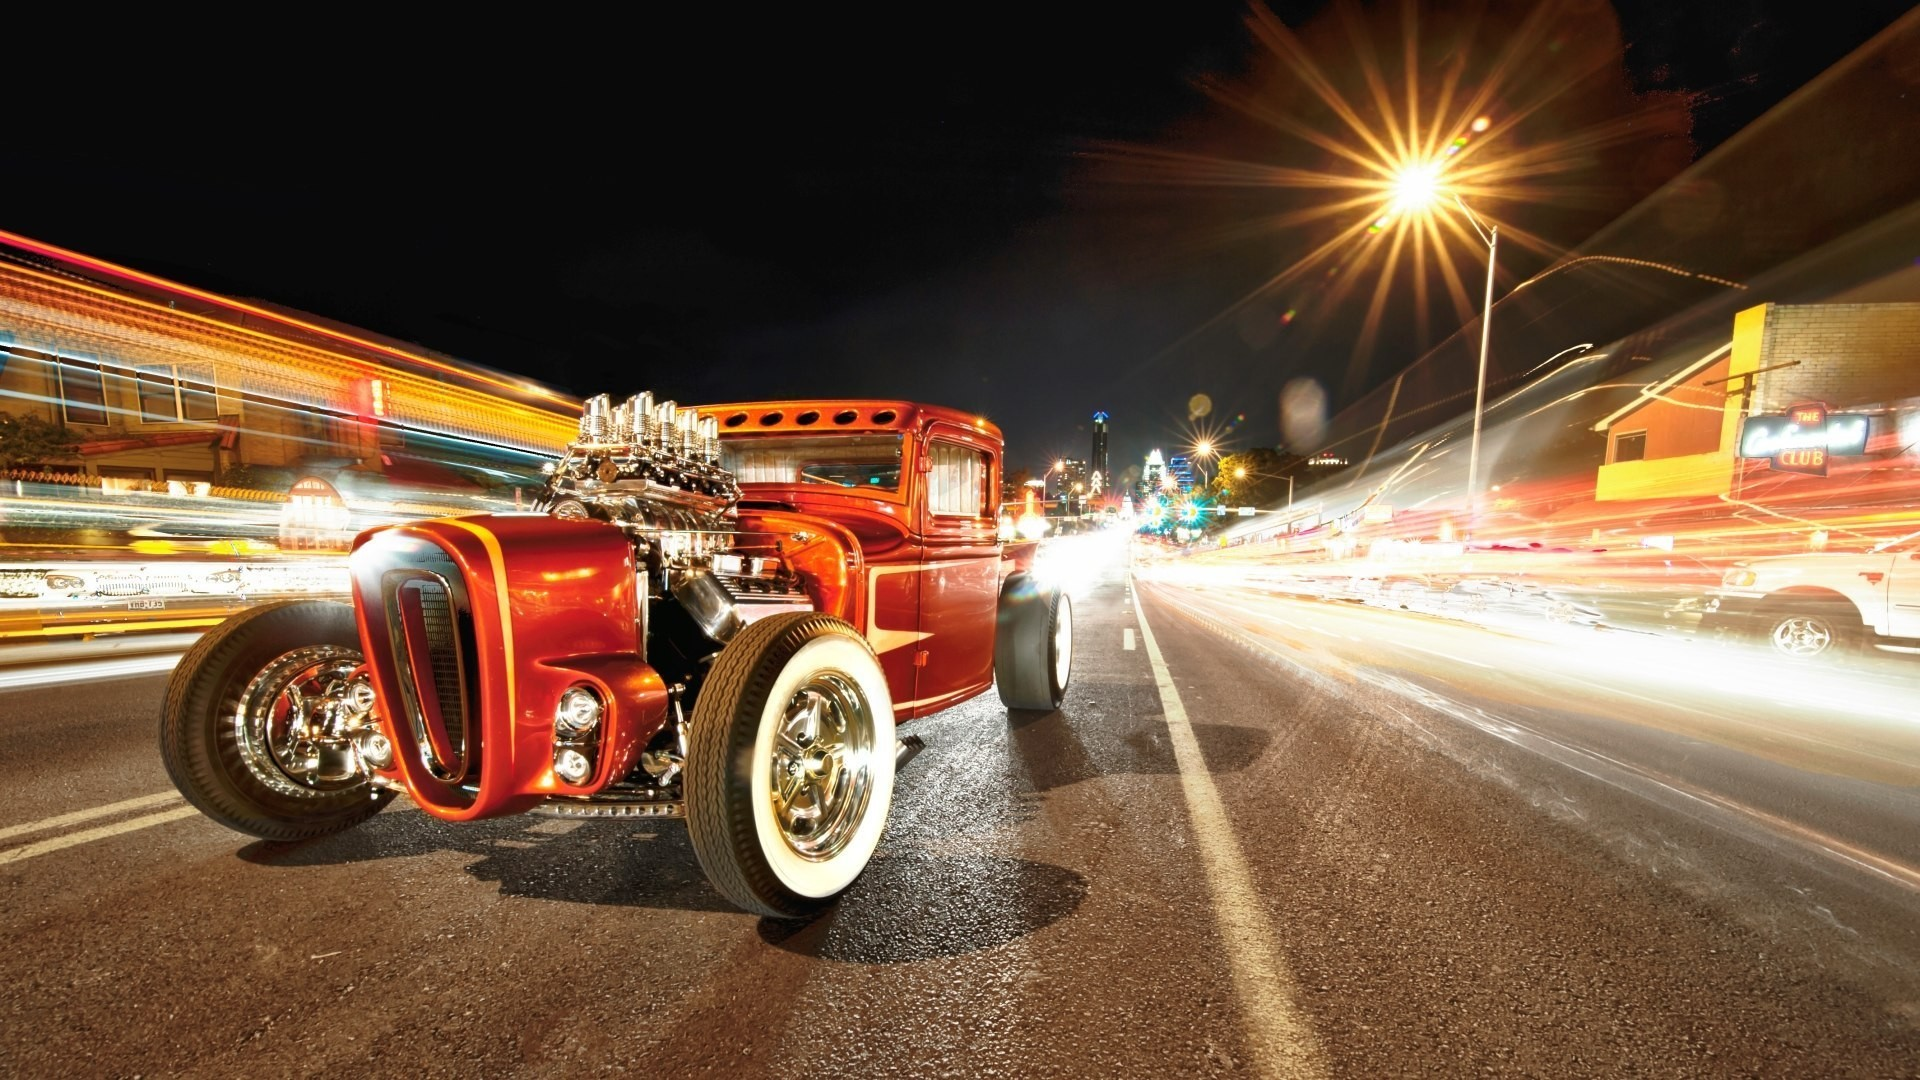 1920x1080 Hot rod and muscle car wallpaper dump